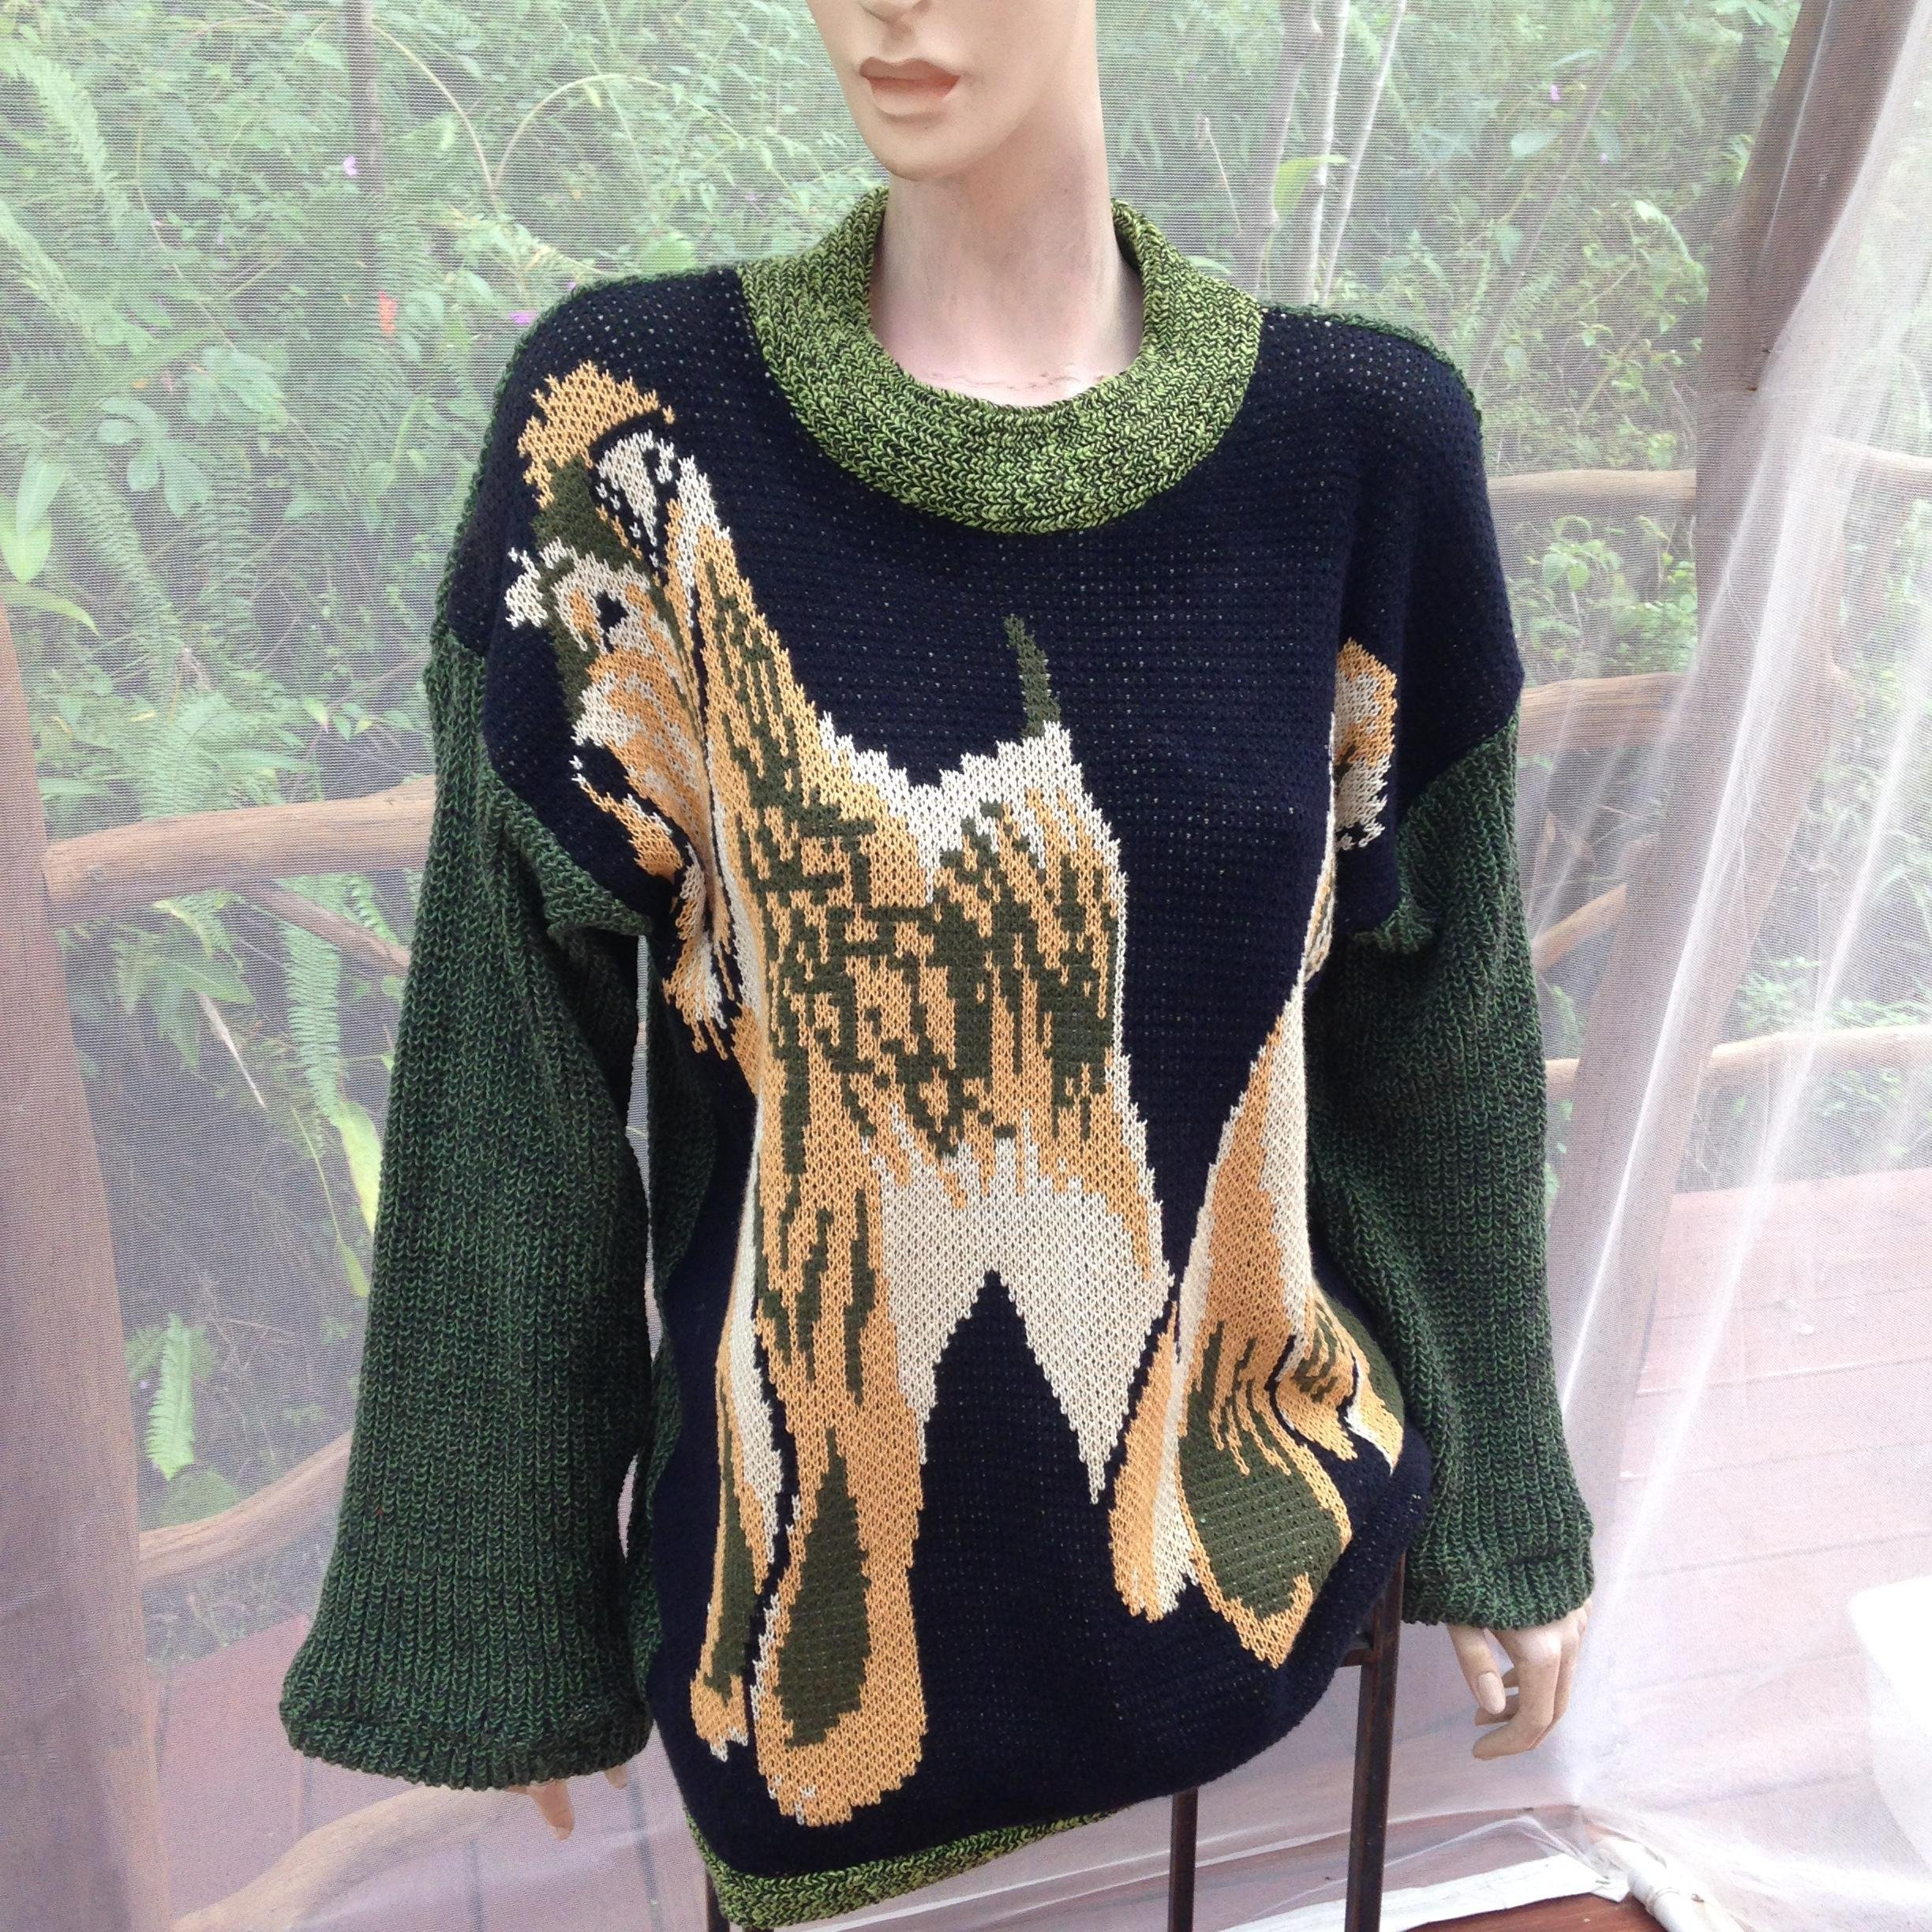 Cotton knit sweater with miniature schnauzers, oversize sweater, cotton knit pullover tunic